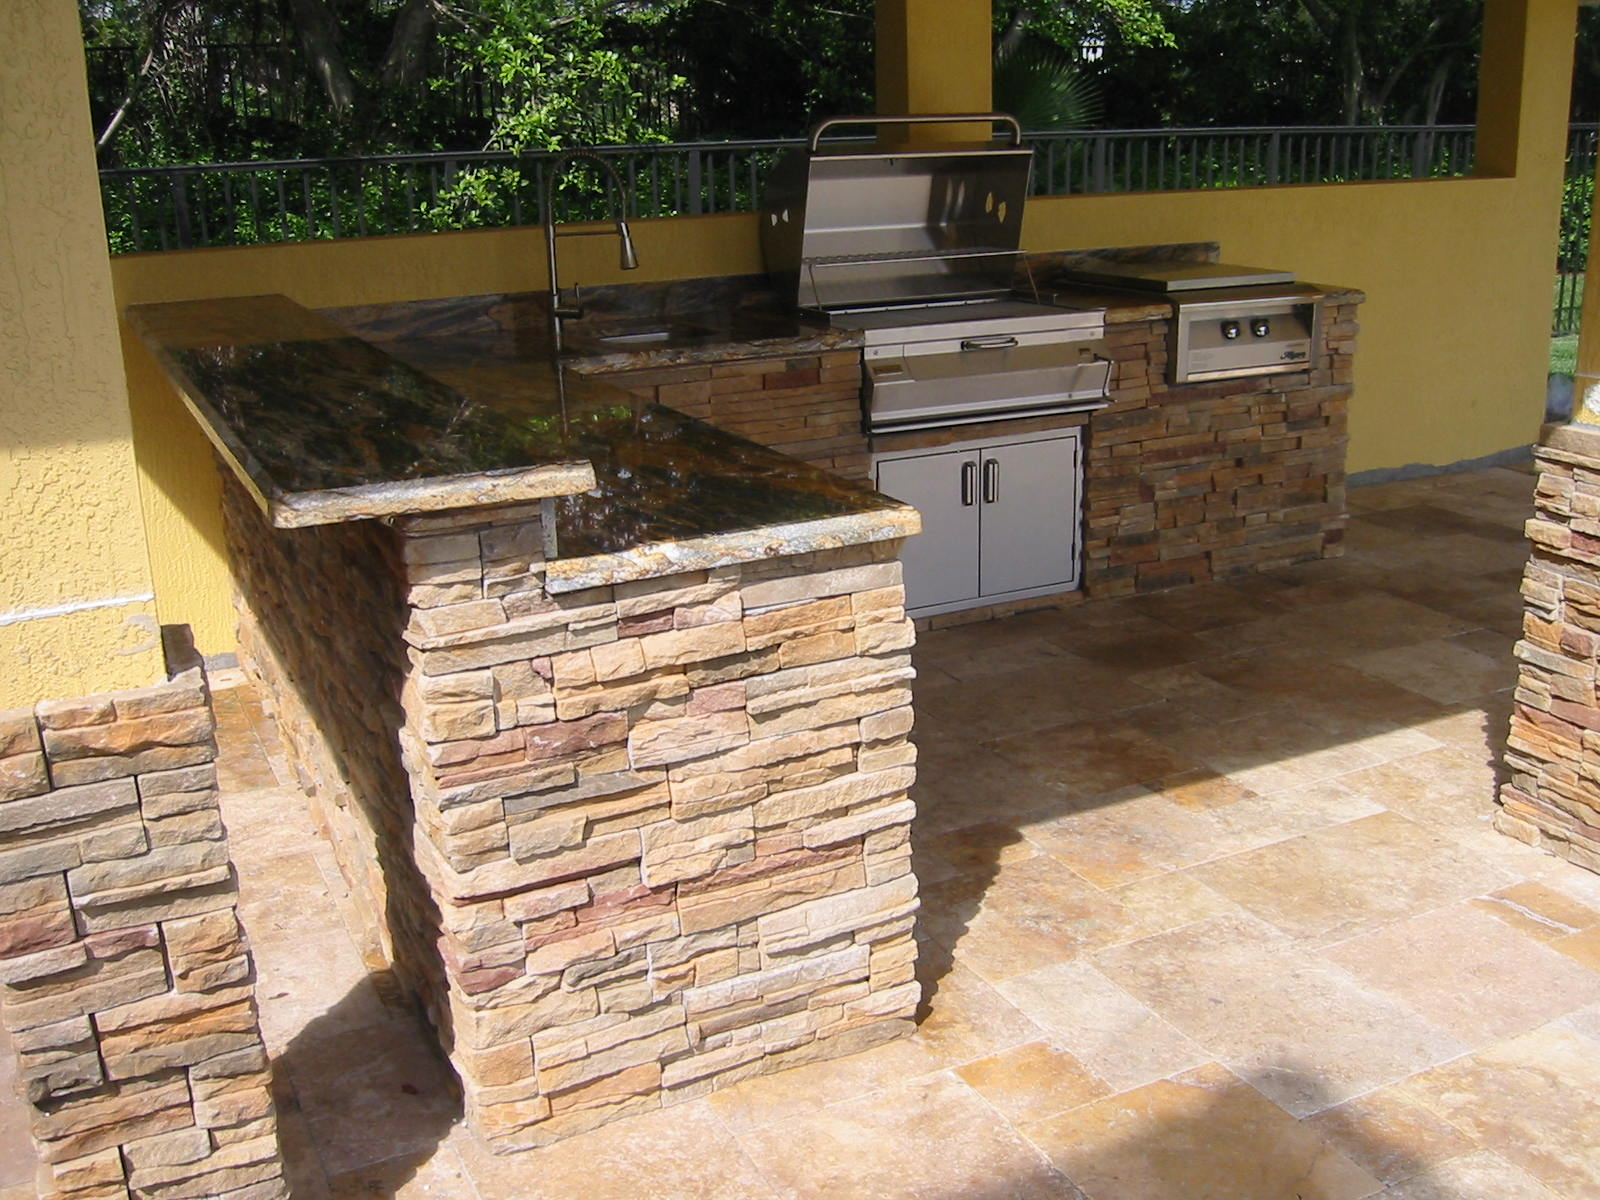 outdoor kitchen accessories extravagant add some thrill to your grill custom outdoor kitchens bbq grills grill repair parts